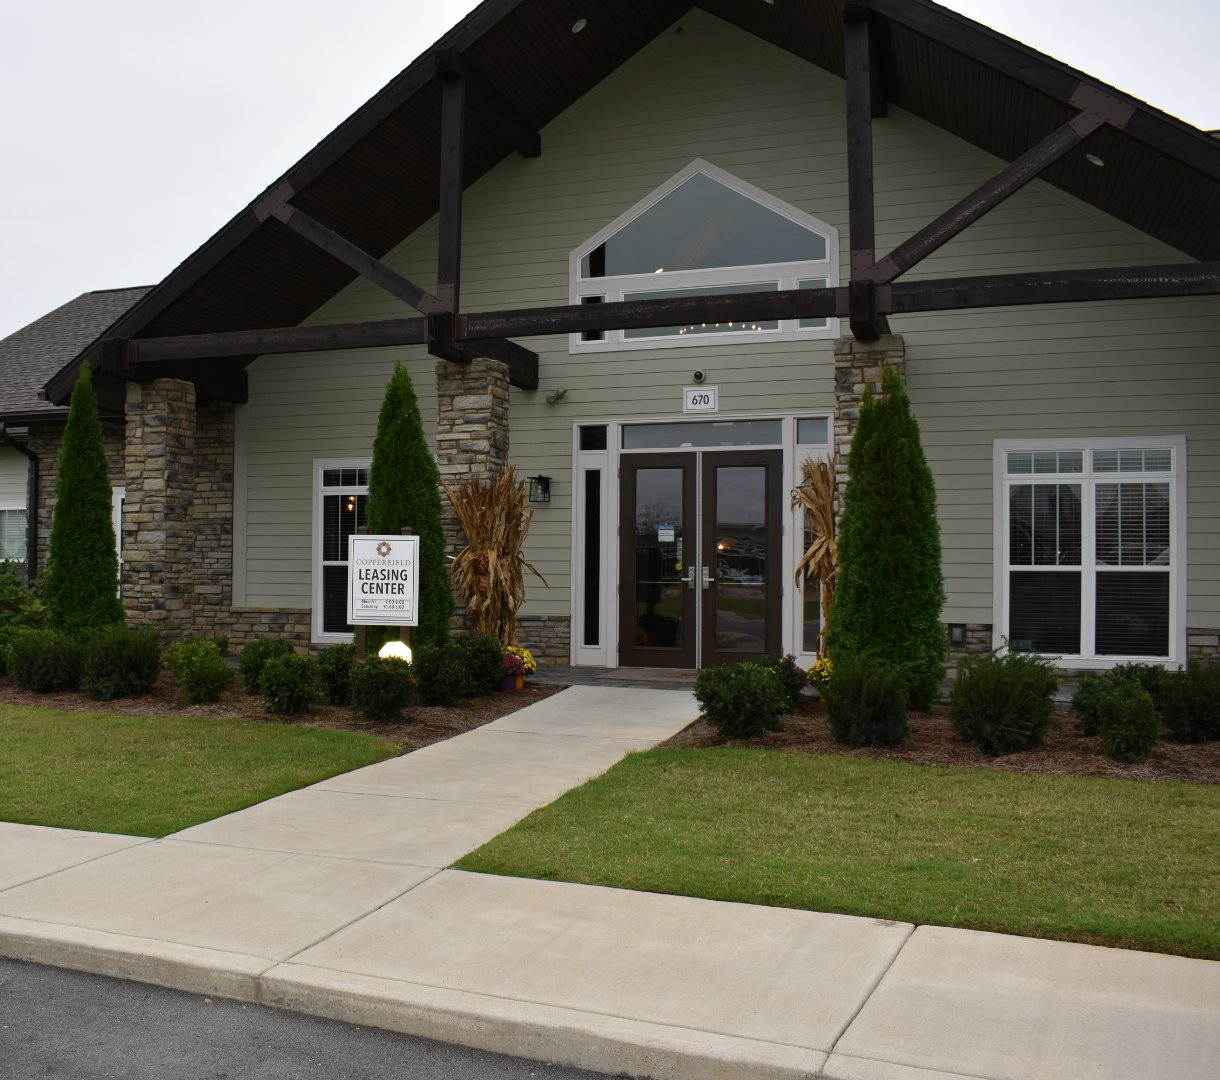 Leasing Center at Copperfield Apartments, Tennessee